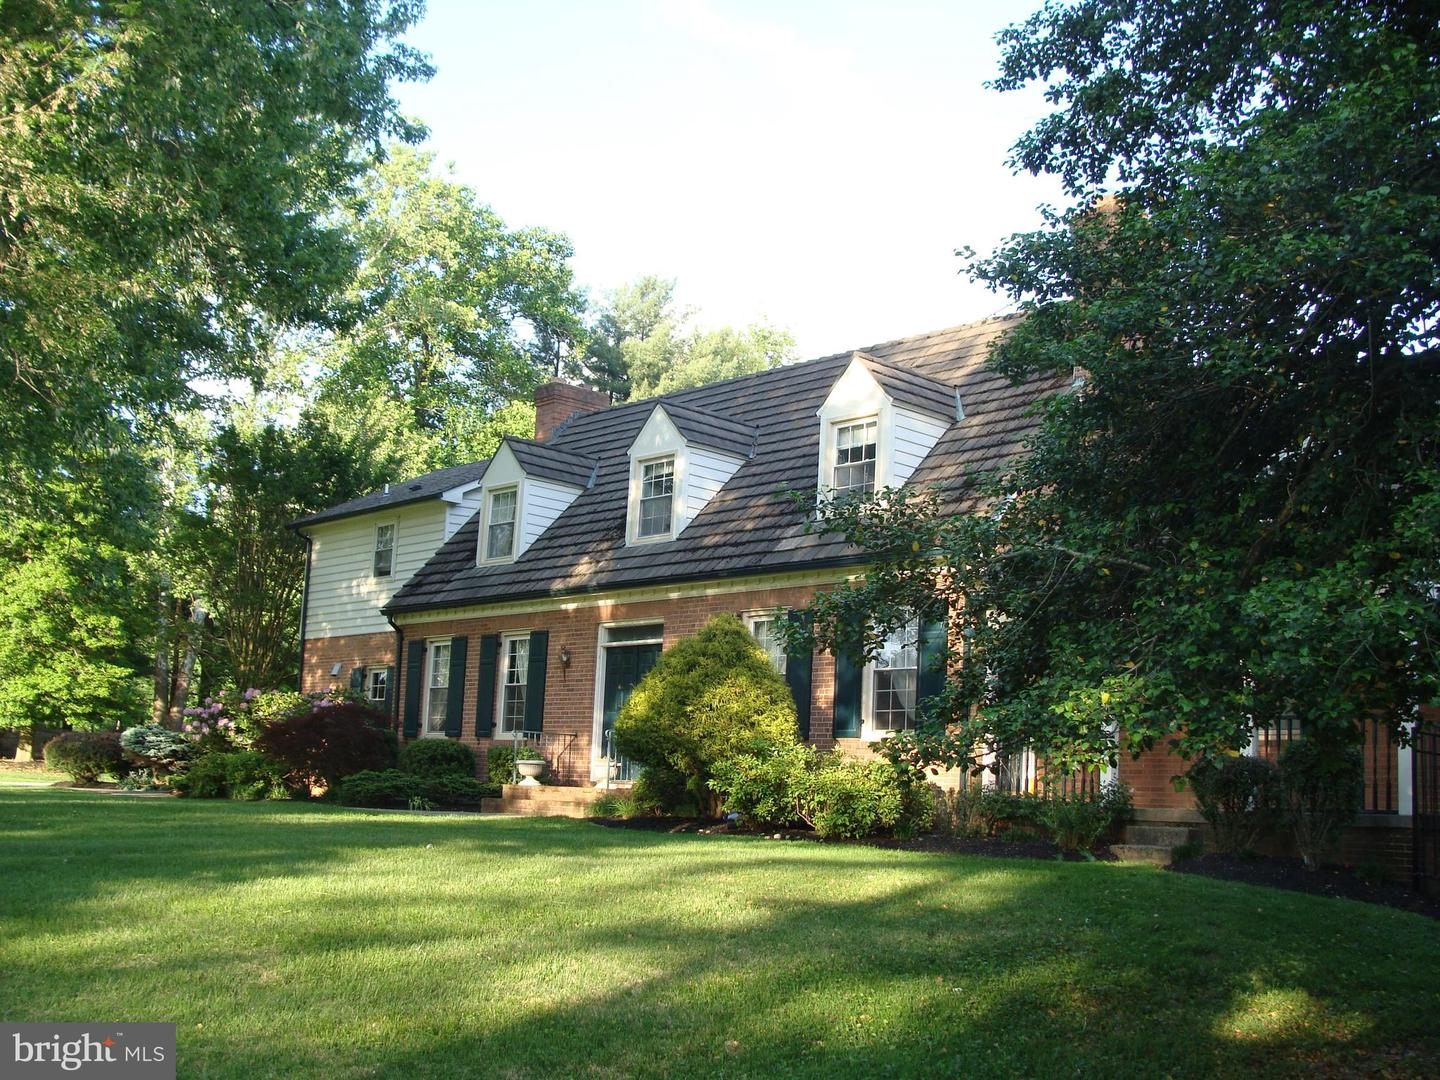 10711 LOCKLAND ROAD, POTOMAC, Maryland